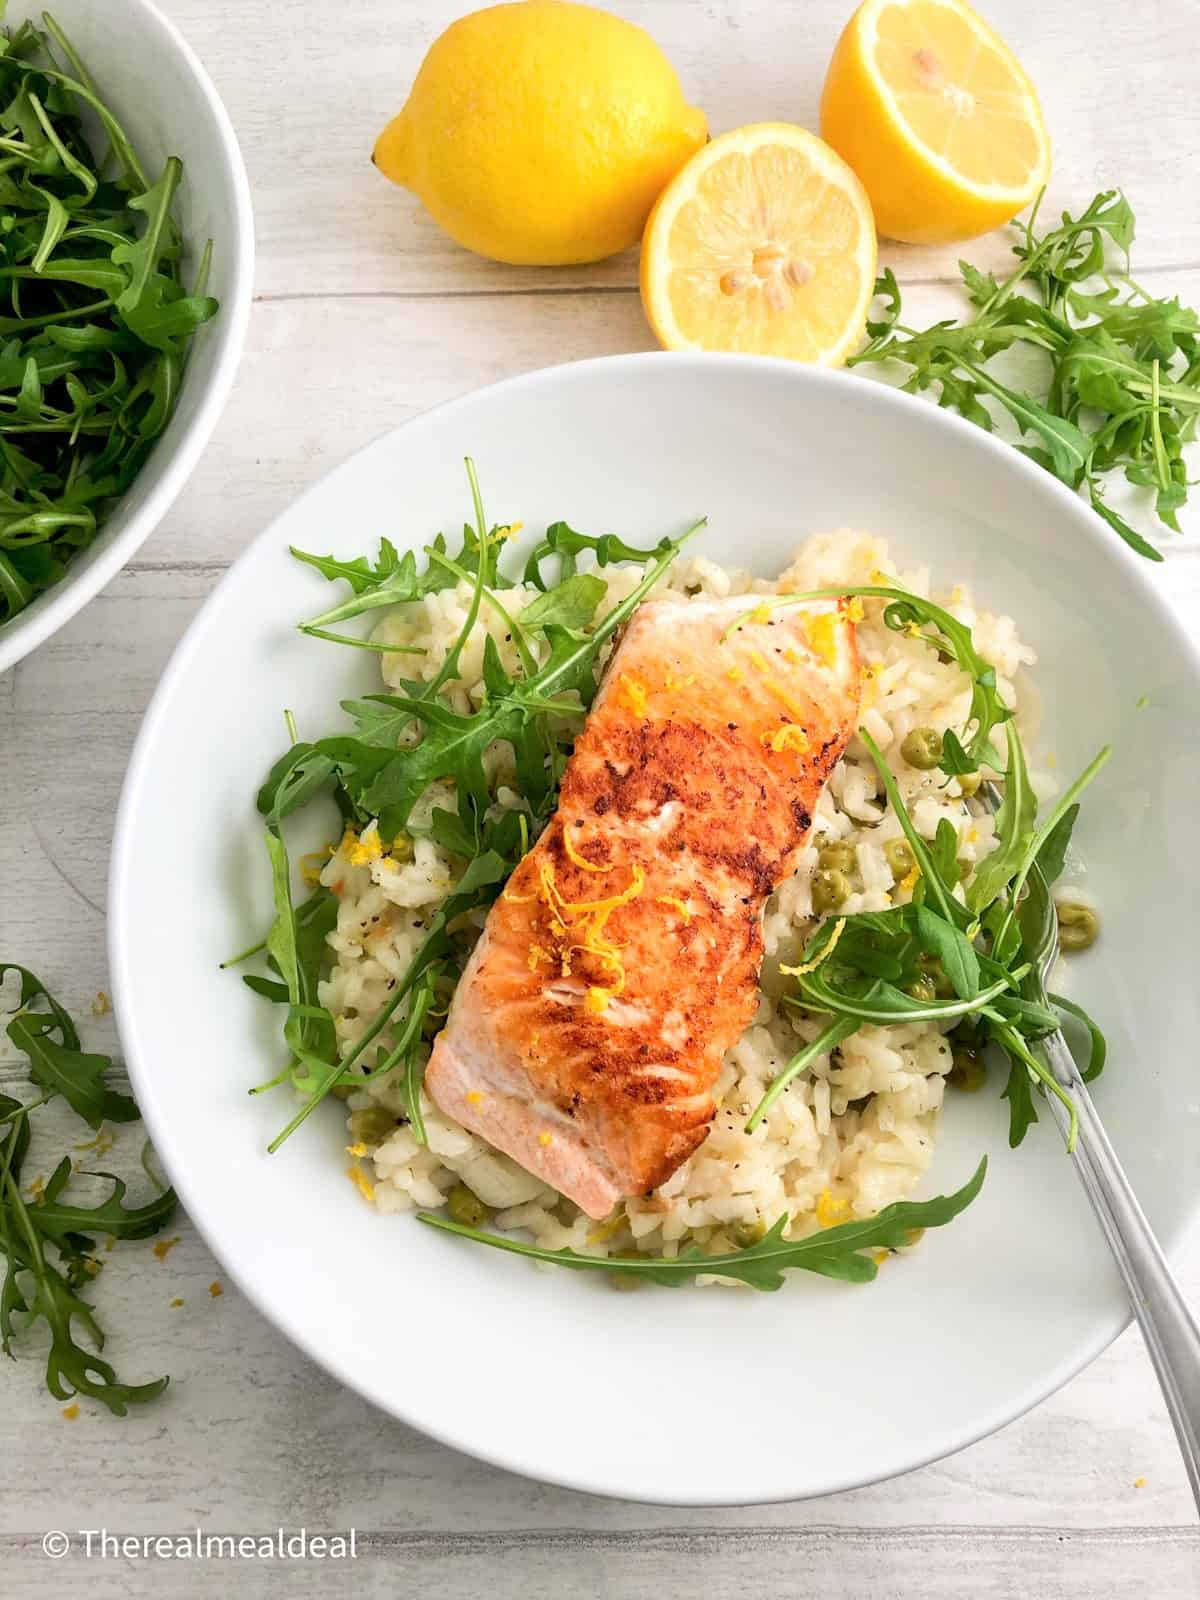 pan fried salmon fillet on risotto topped with rocket leaves